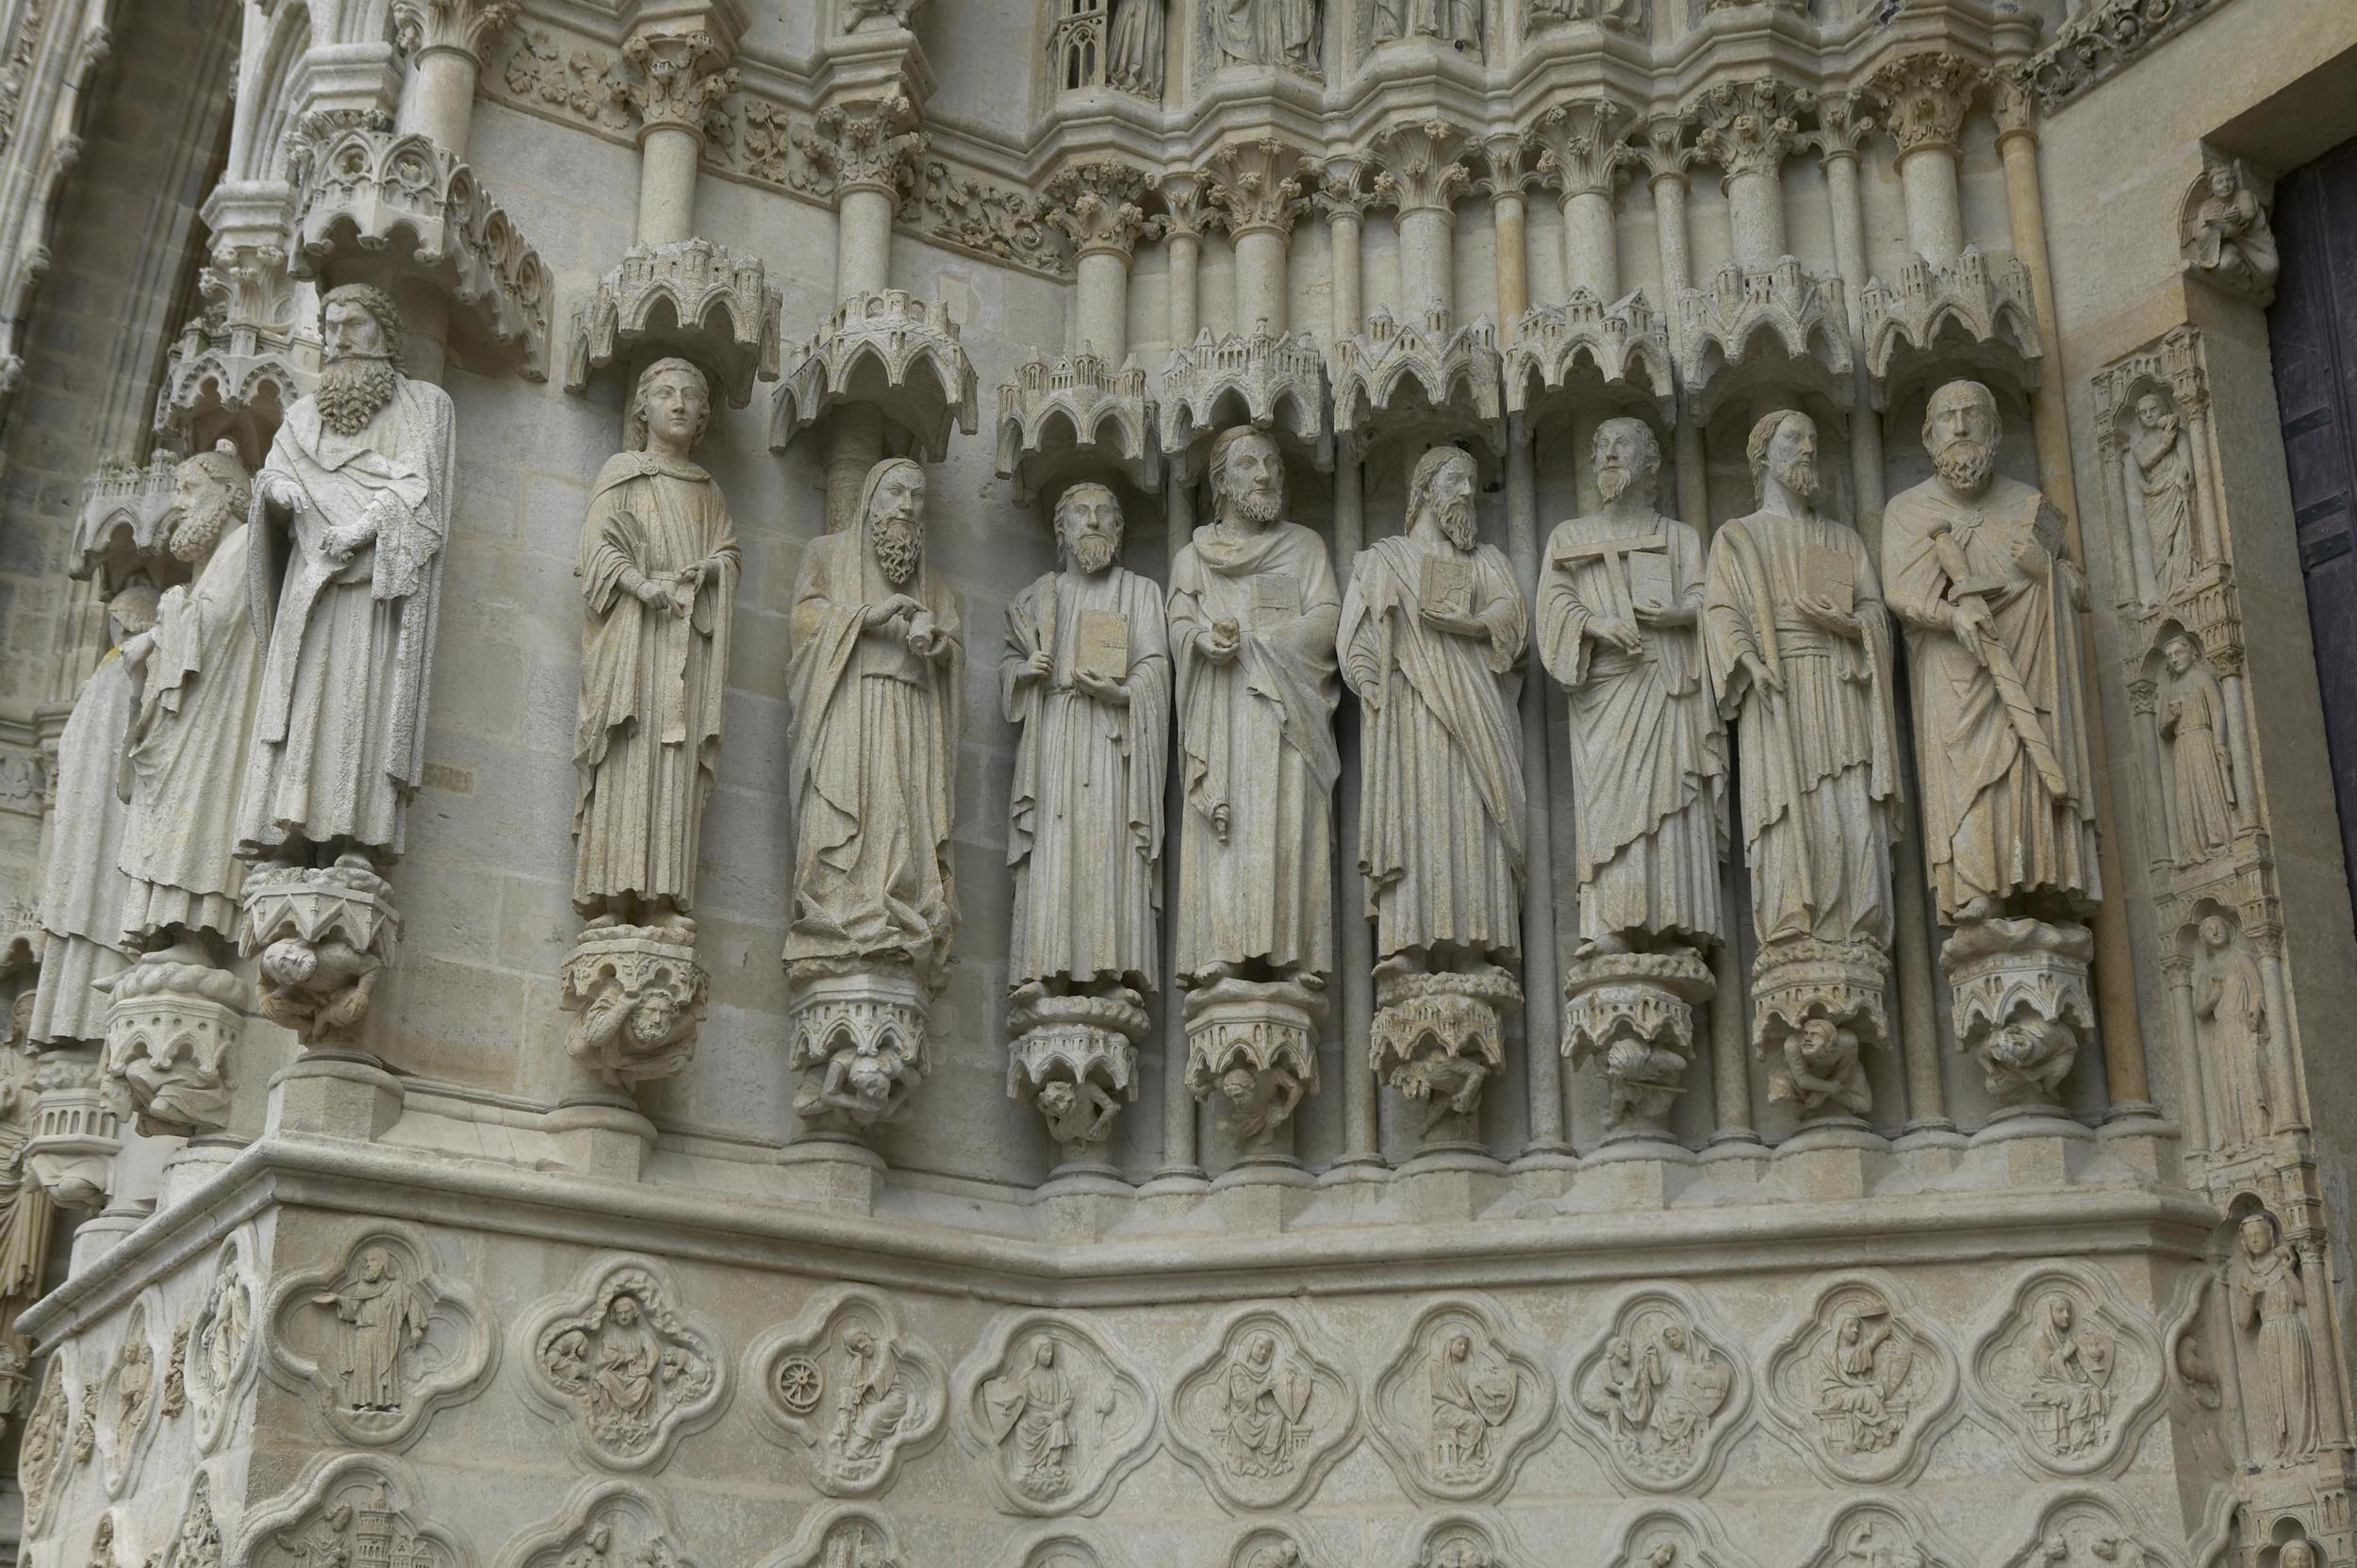 Jamb Figures: Apostles Paul, James the Lesser, Thomas, Matthew, Phillip, Simon (or Judas)